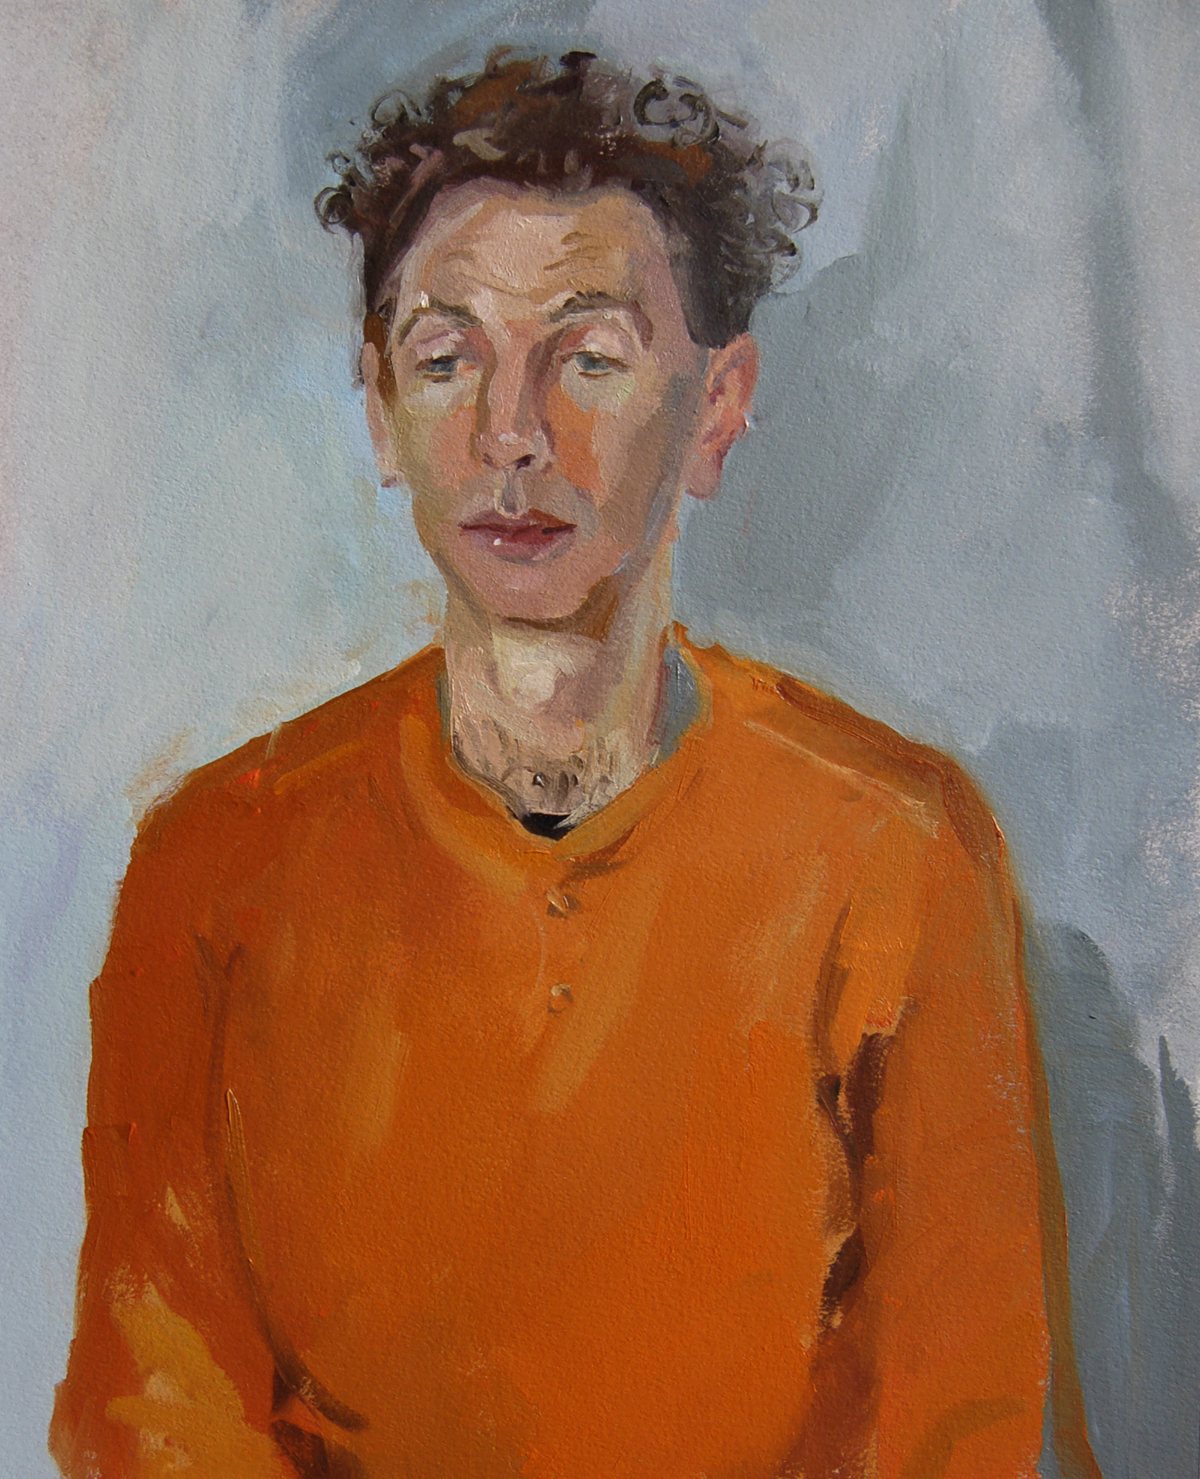 SPA 2019, Kim Scouller, Peter in Orange Jumper, Highgate, 2018,  Oil on Arches Oil Paper, 35 x 30 cms (framed), £1,200 (All rights reserved)